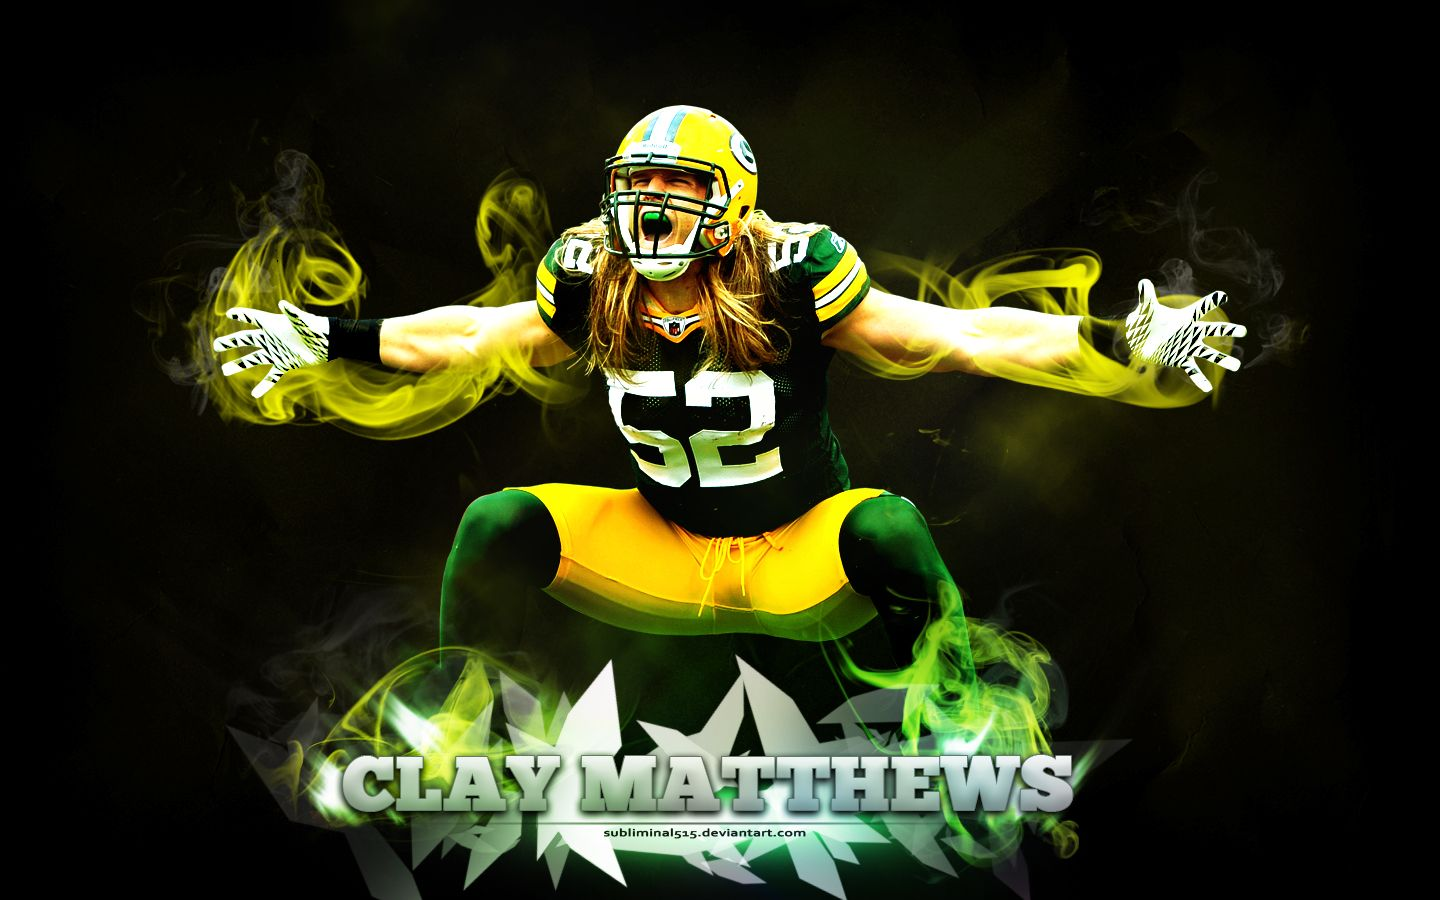 1000+ images about GREENBAY PACKERS on Pinterest | Backgrounds for computer, ...